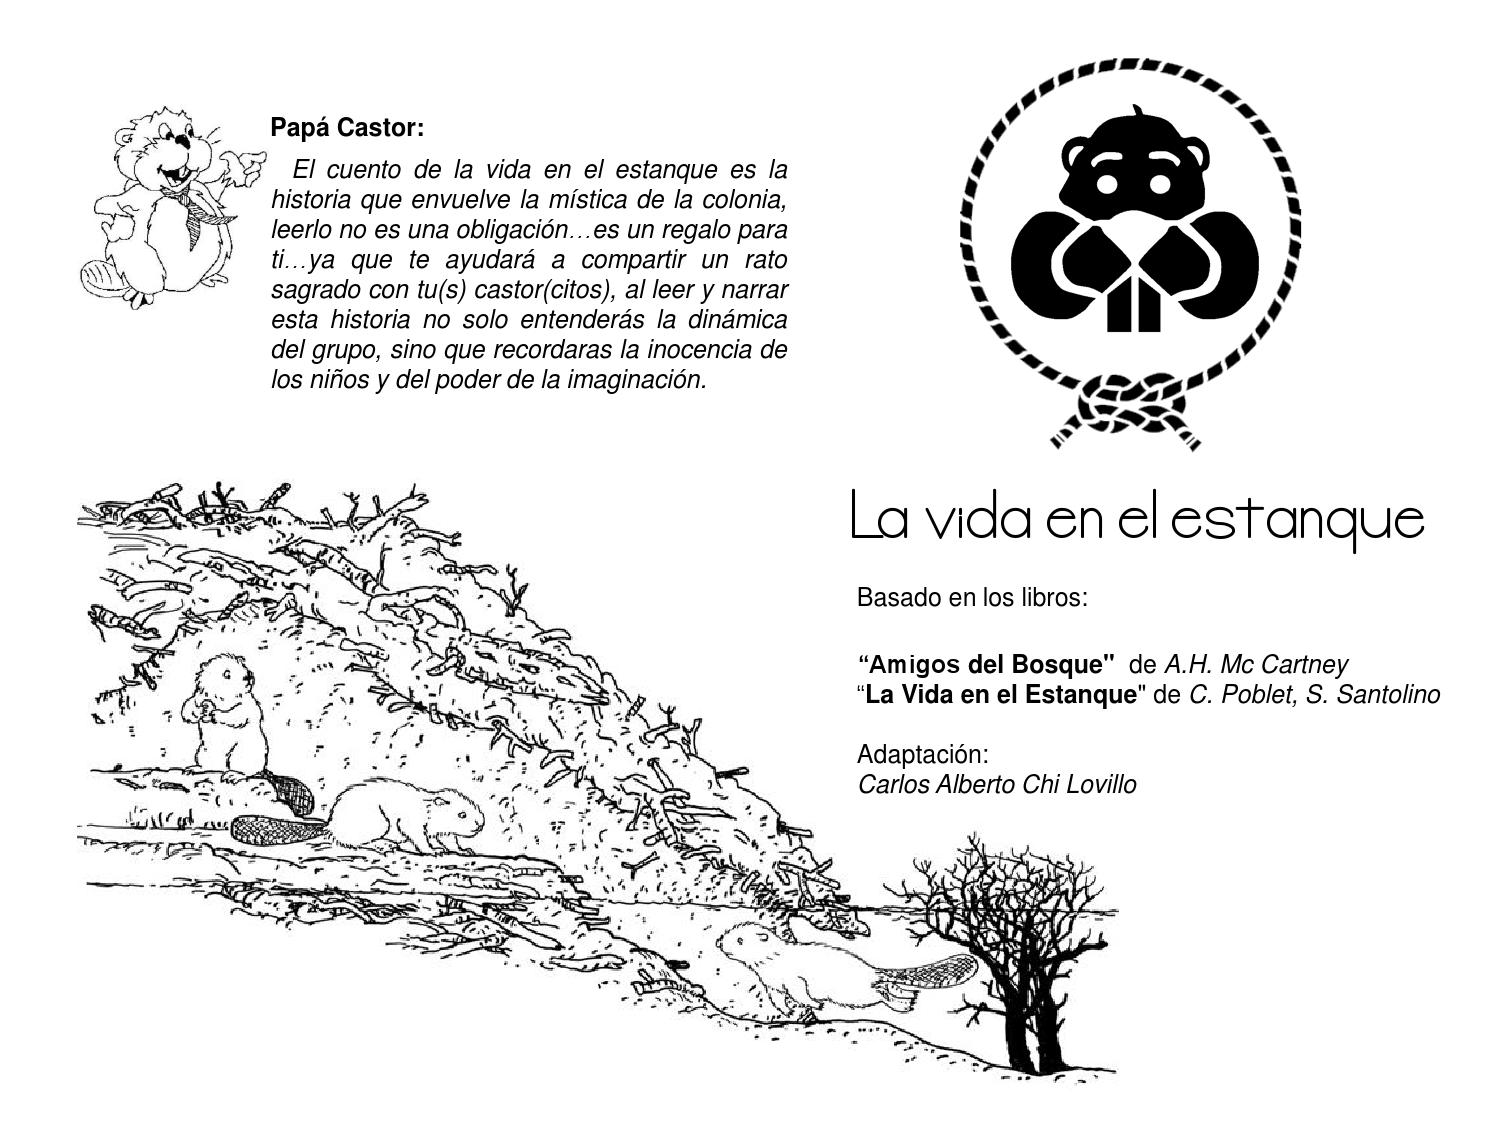 La vida en el estanque by carlos chi issuu for Caracteristicas de un estanque